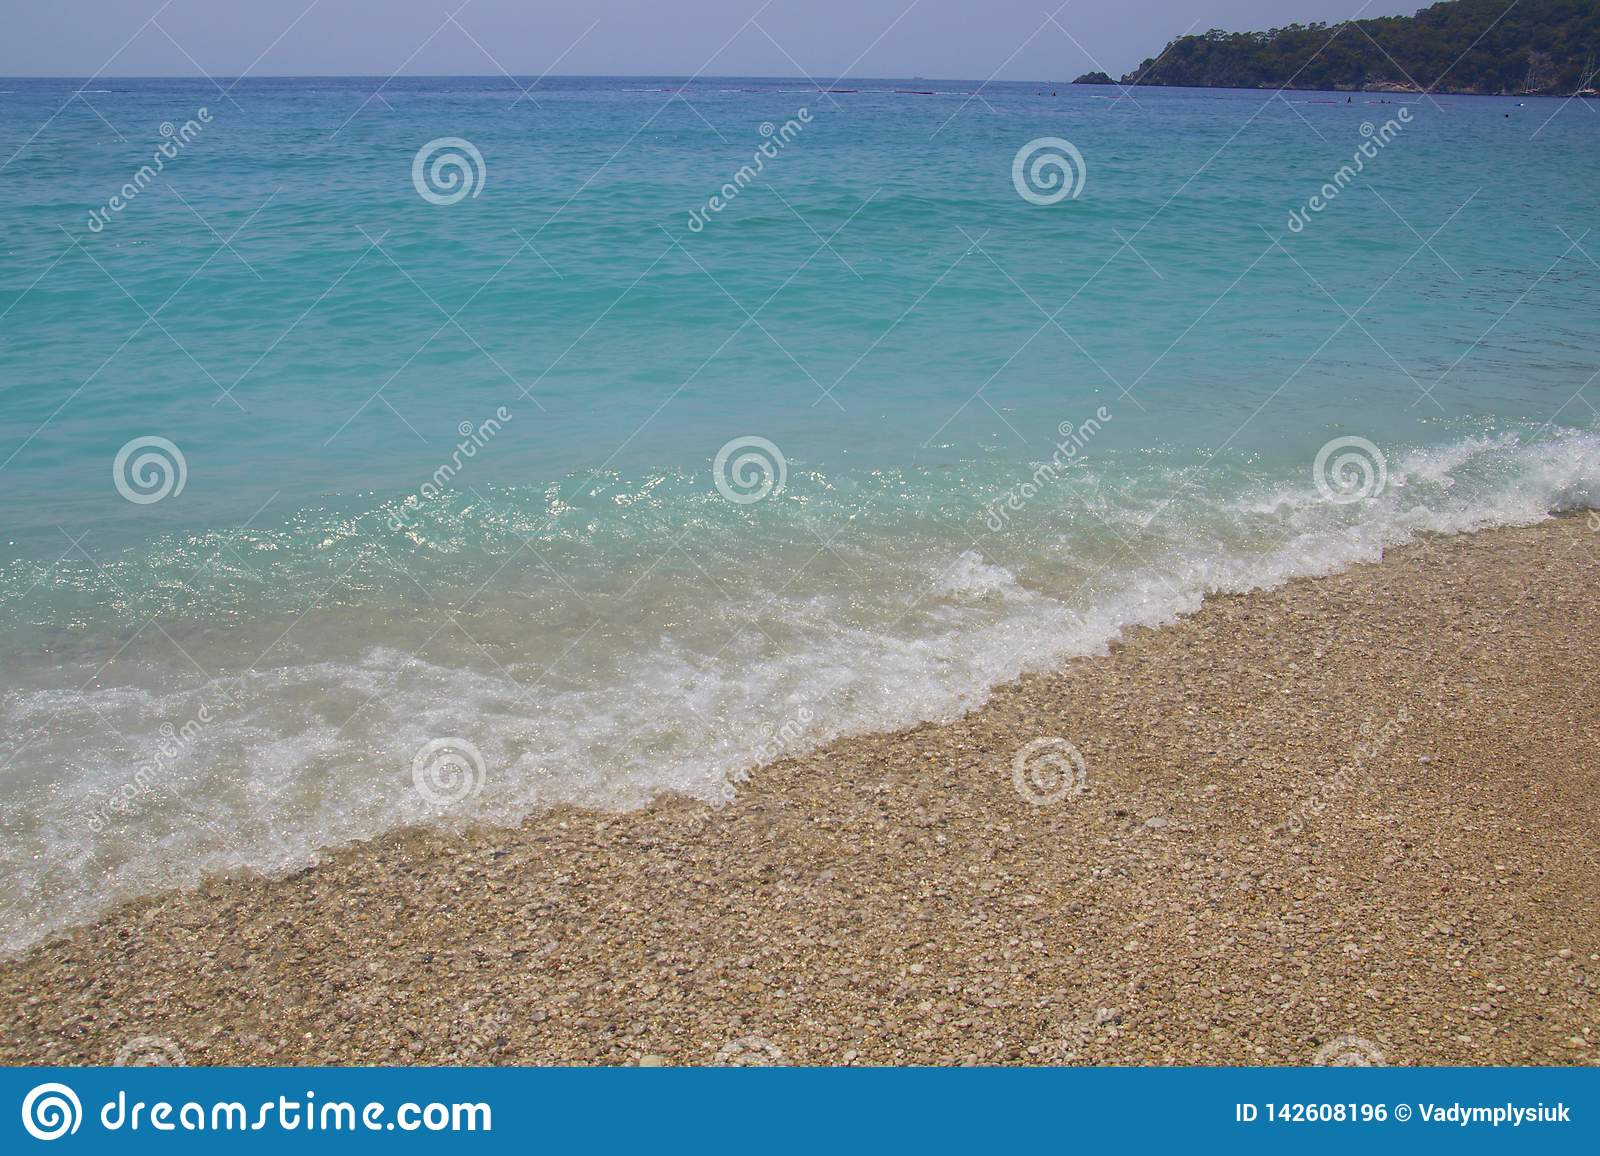 Blue water with sea foam. Small waves are coming to the shore. Turquoise water with white pebbles on the beach. Sea line meets the